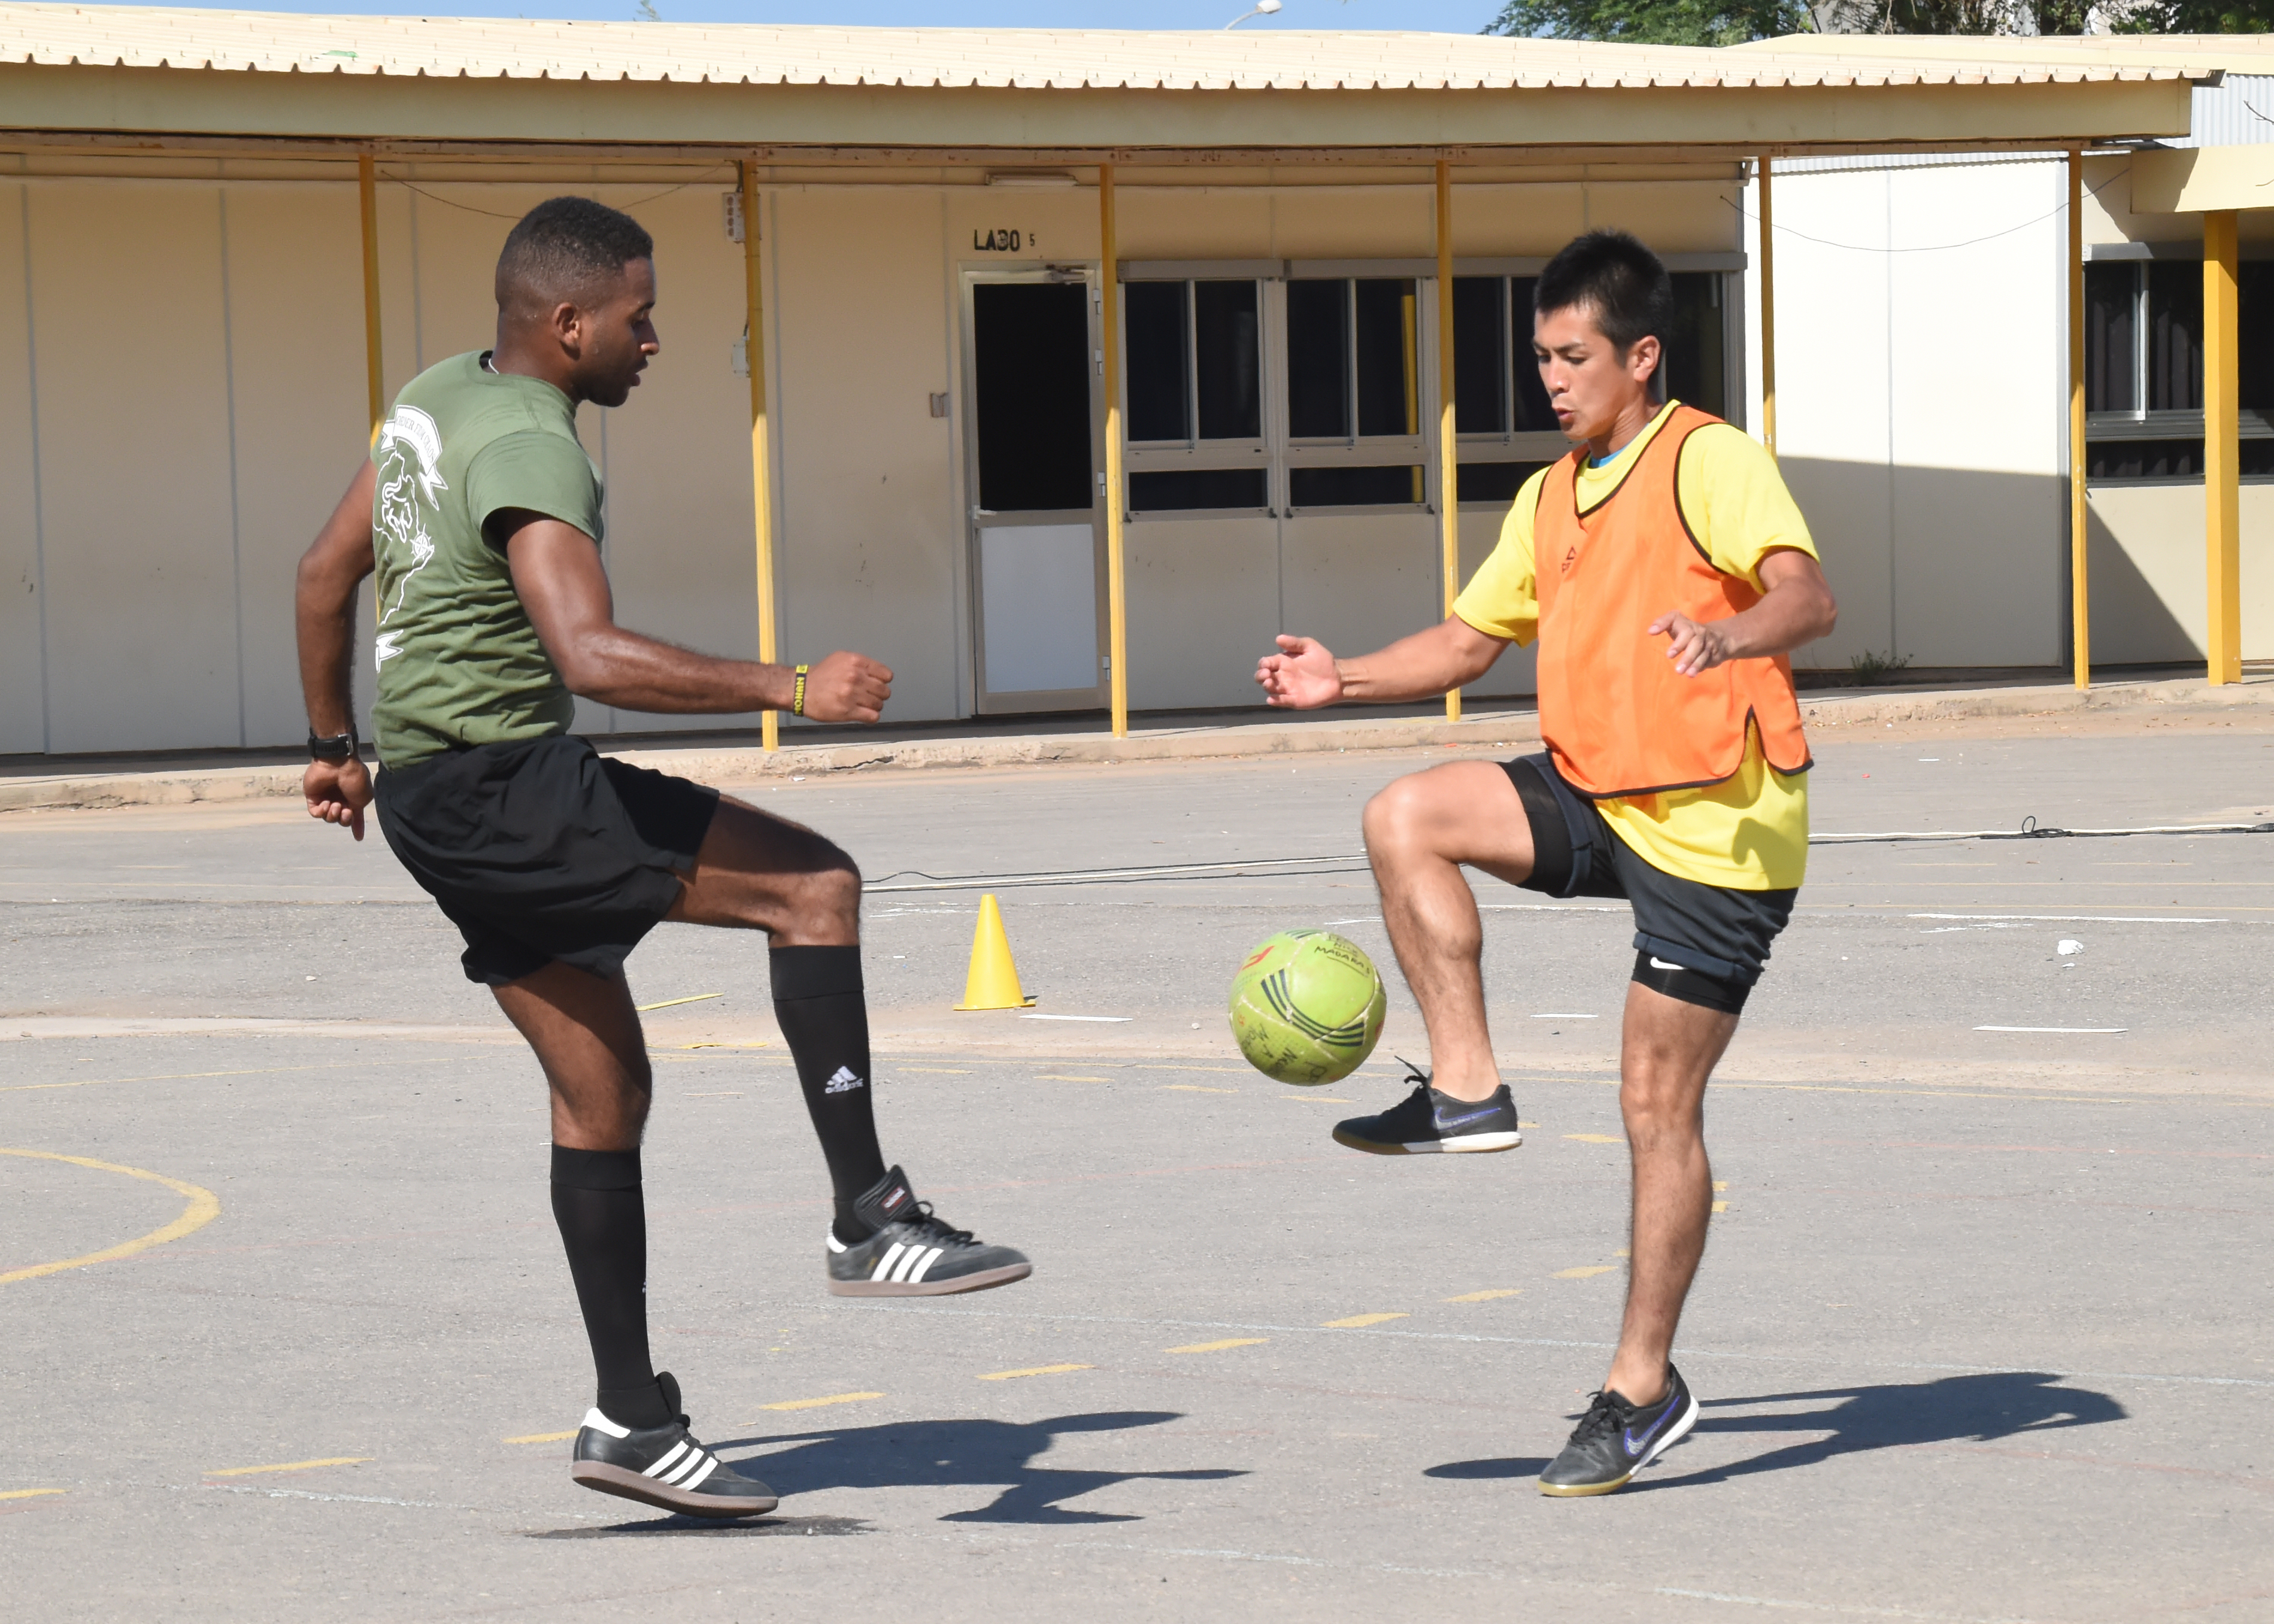 Soccer players representing military units from the U.S. and Japan face off on the field during a friendly soccer tournament supporting the Kick for Nick Foundation at the French school Kessel in downtown Djibouti Dec. 9, 2016. The event brought together eleven different teams from six countries for friendly competition in support of the Kick for Nick Foundation. (U.S. Air National Guard photo by Master Sgt. Paul Gorman)